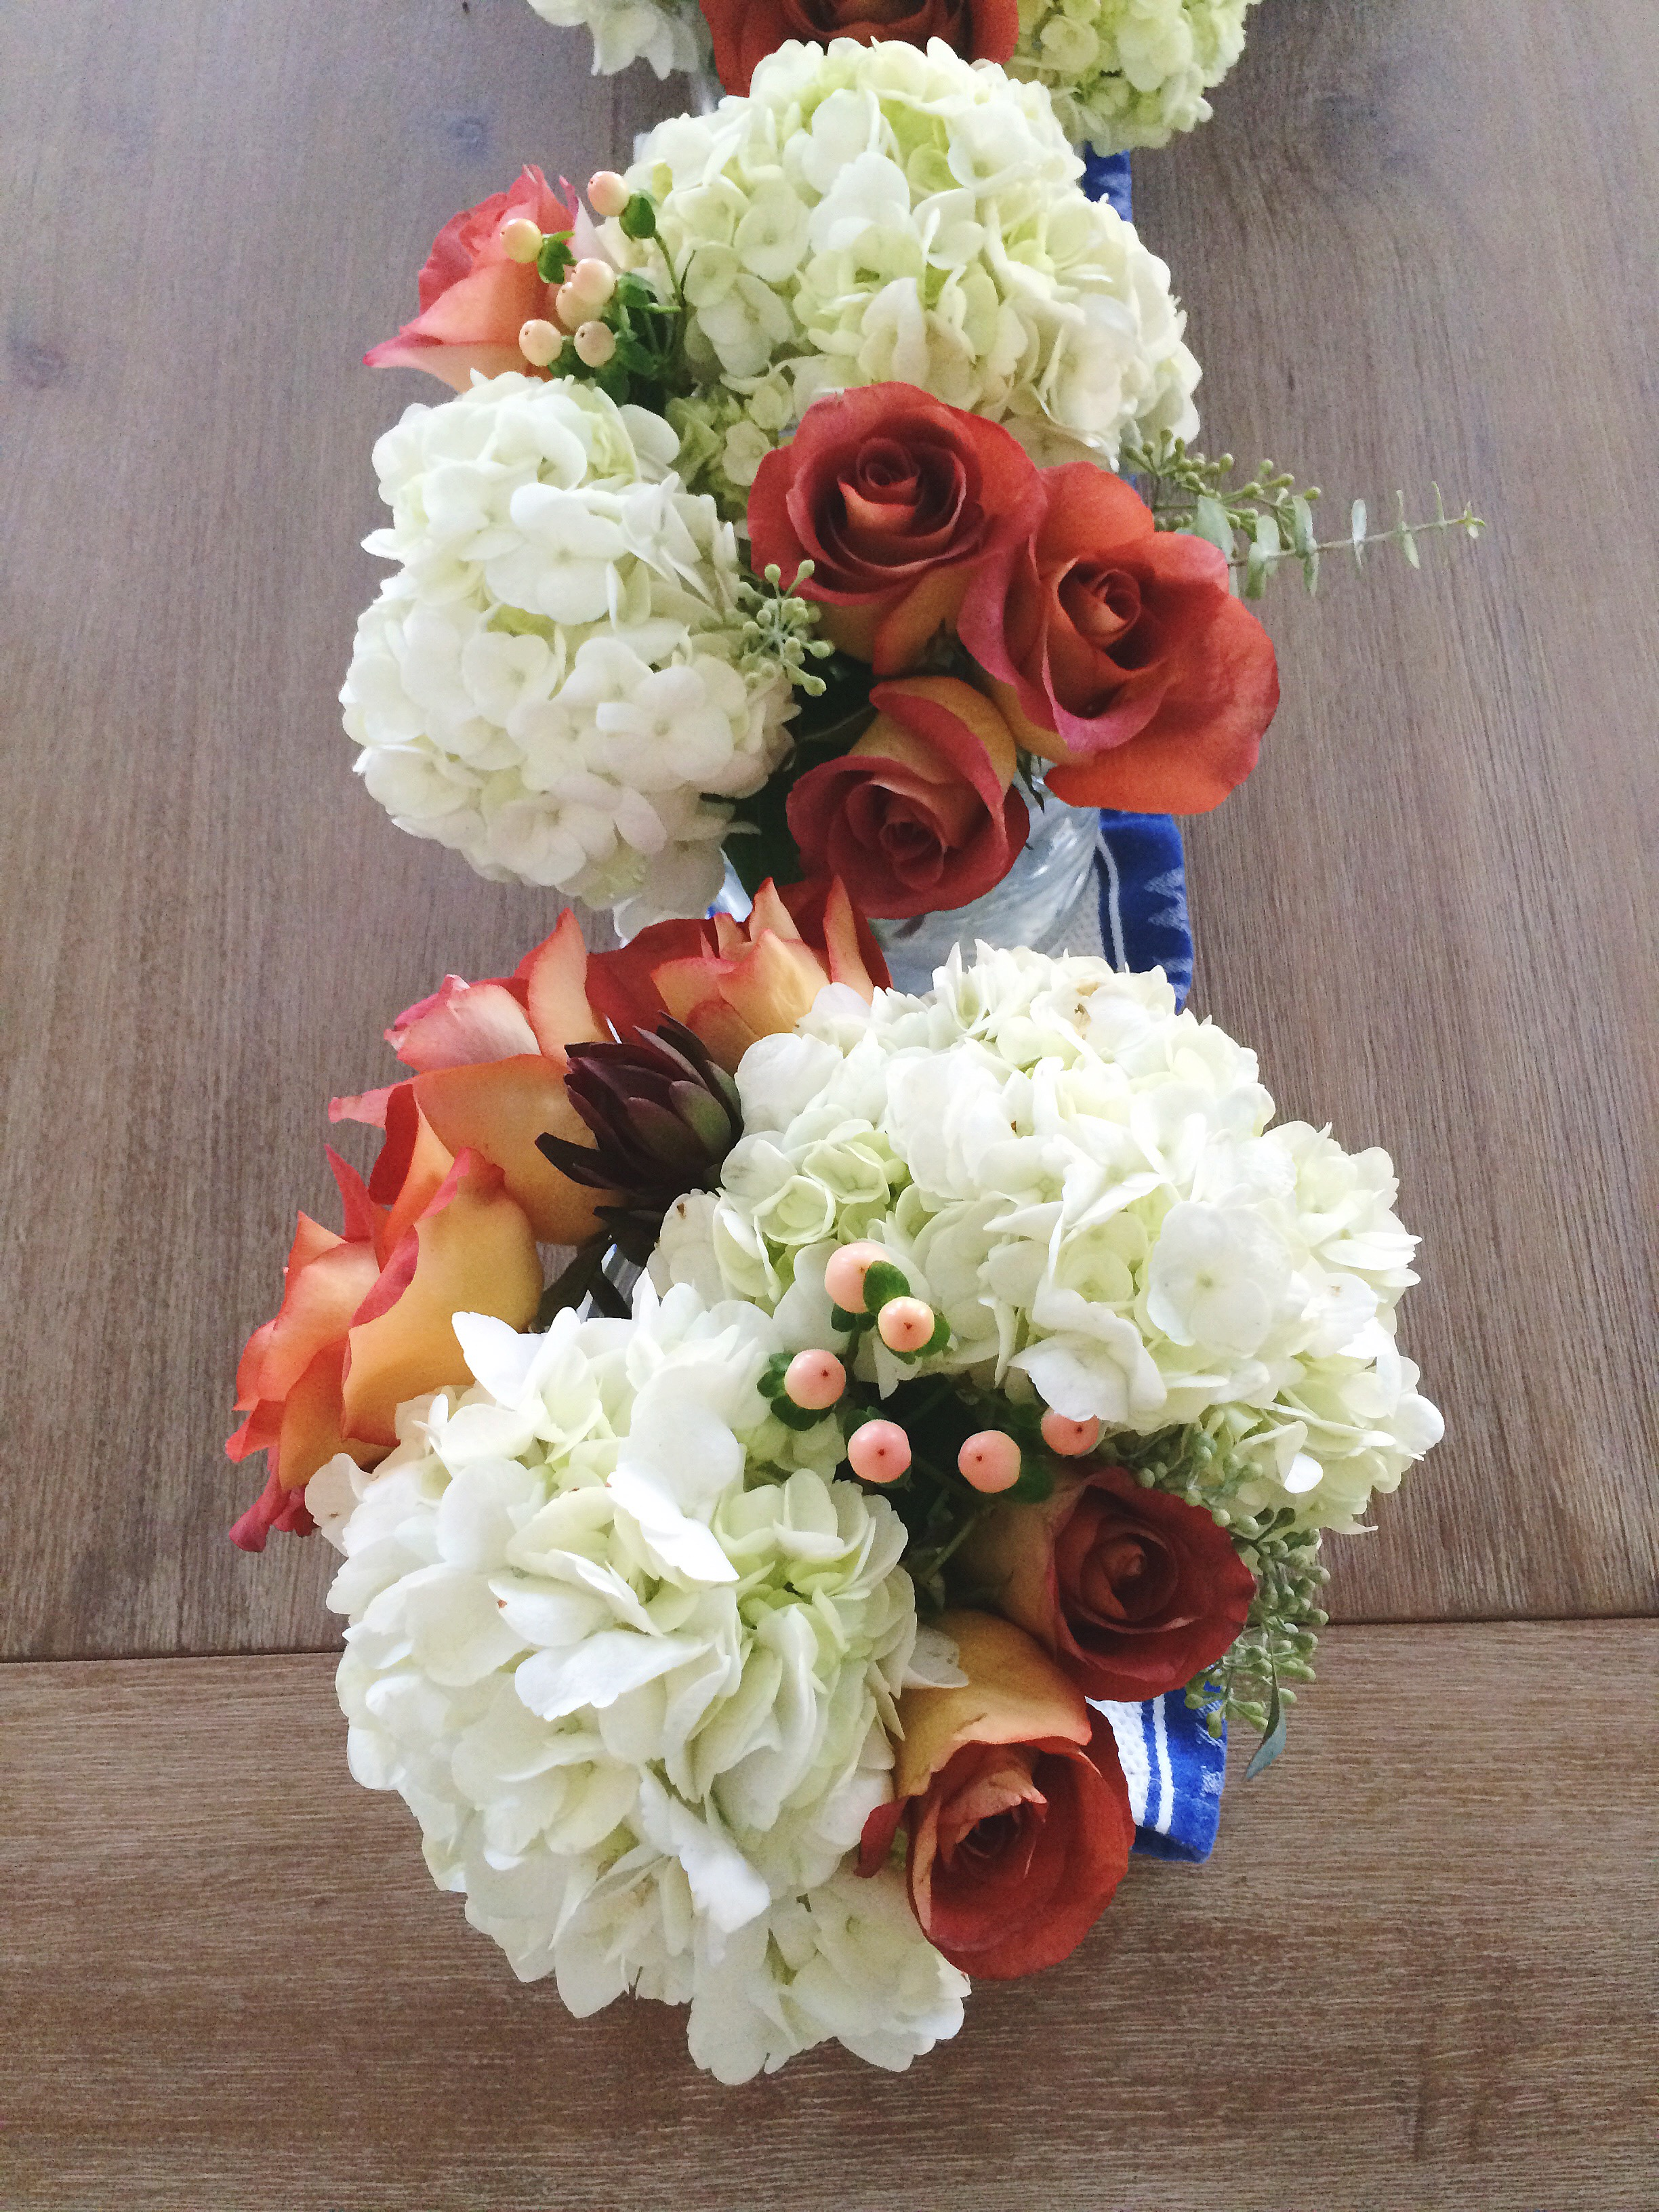 Create Florist-worthy blooms on a budget